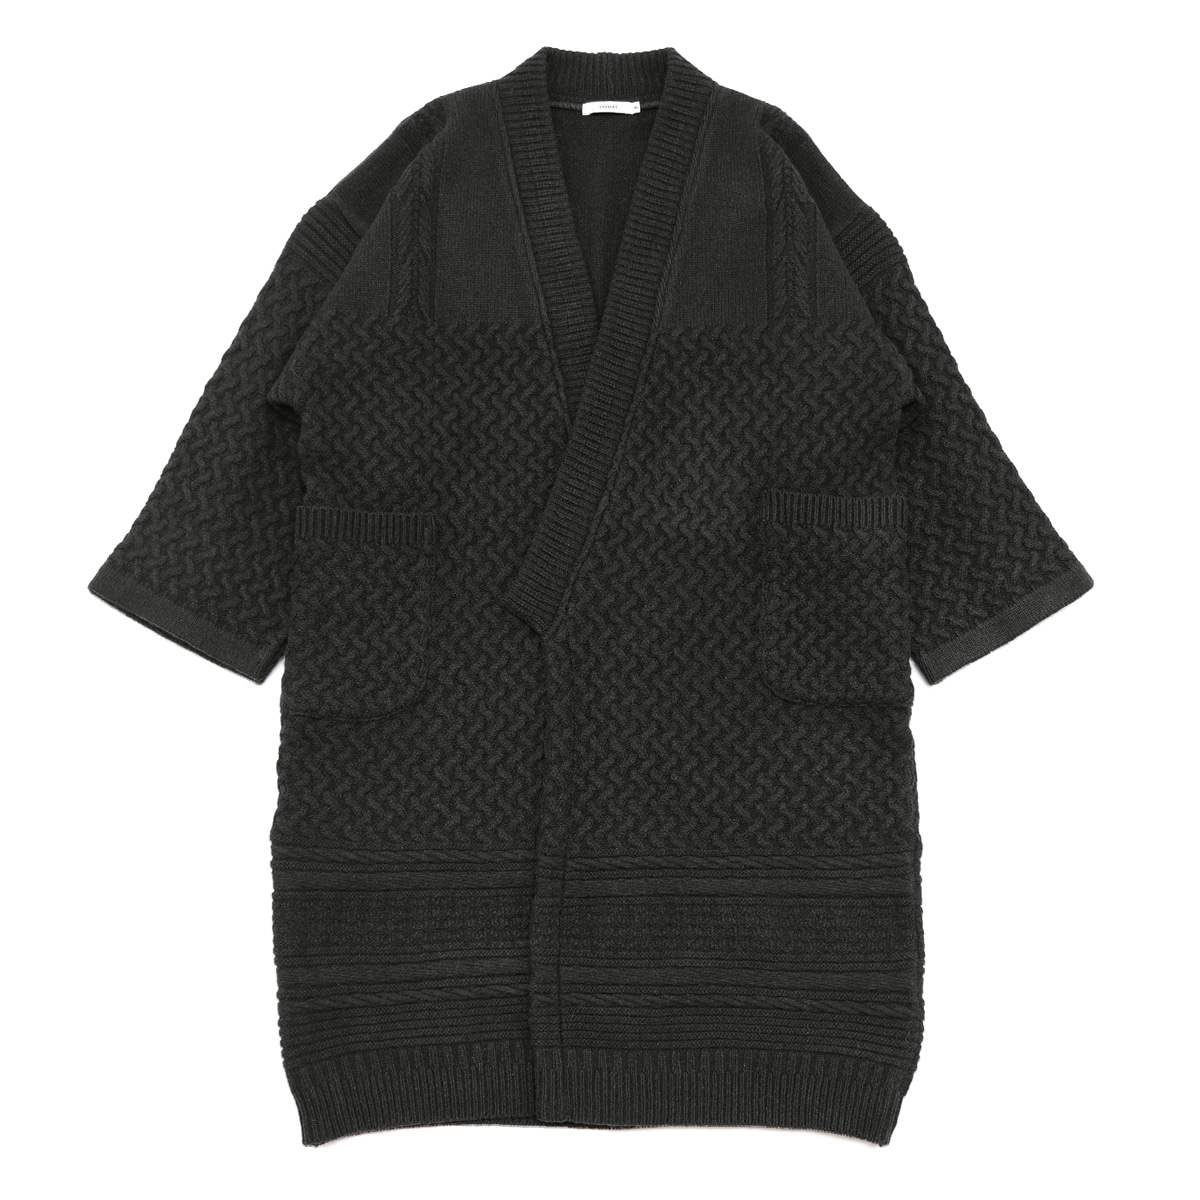 [YASHIKI] TSUKIMI KNIT COAT 'BLACK'